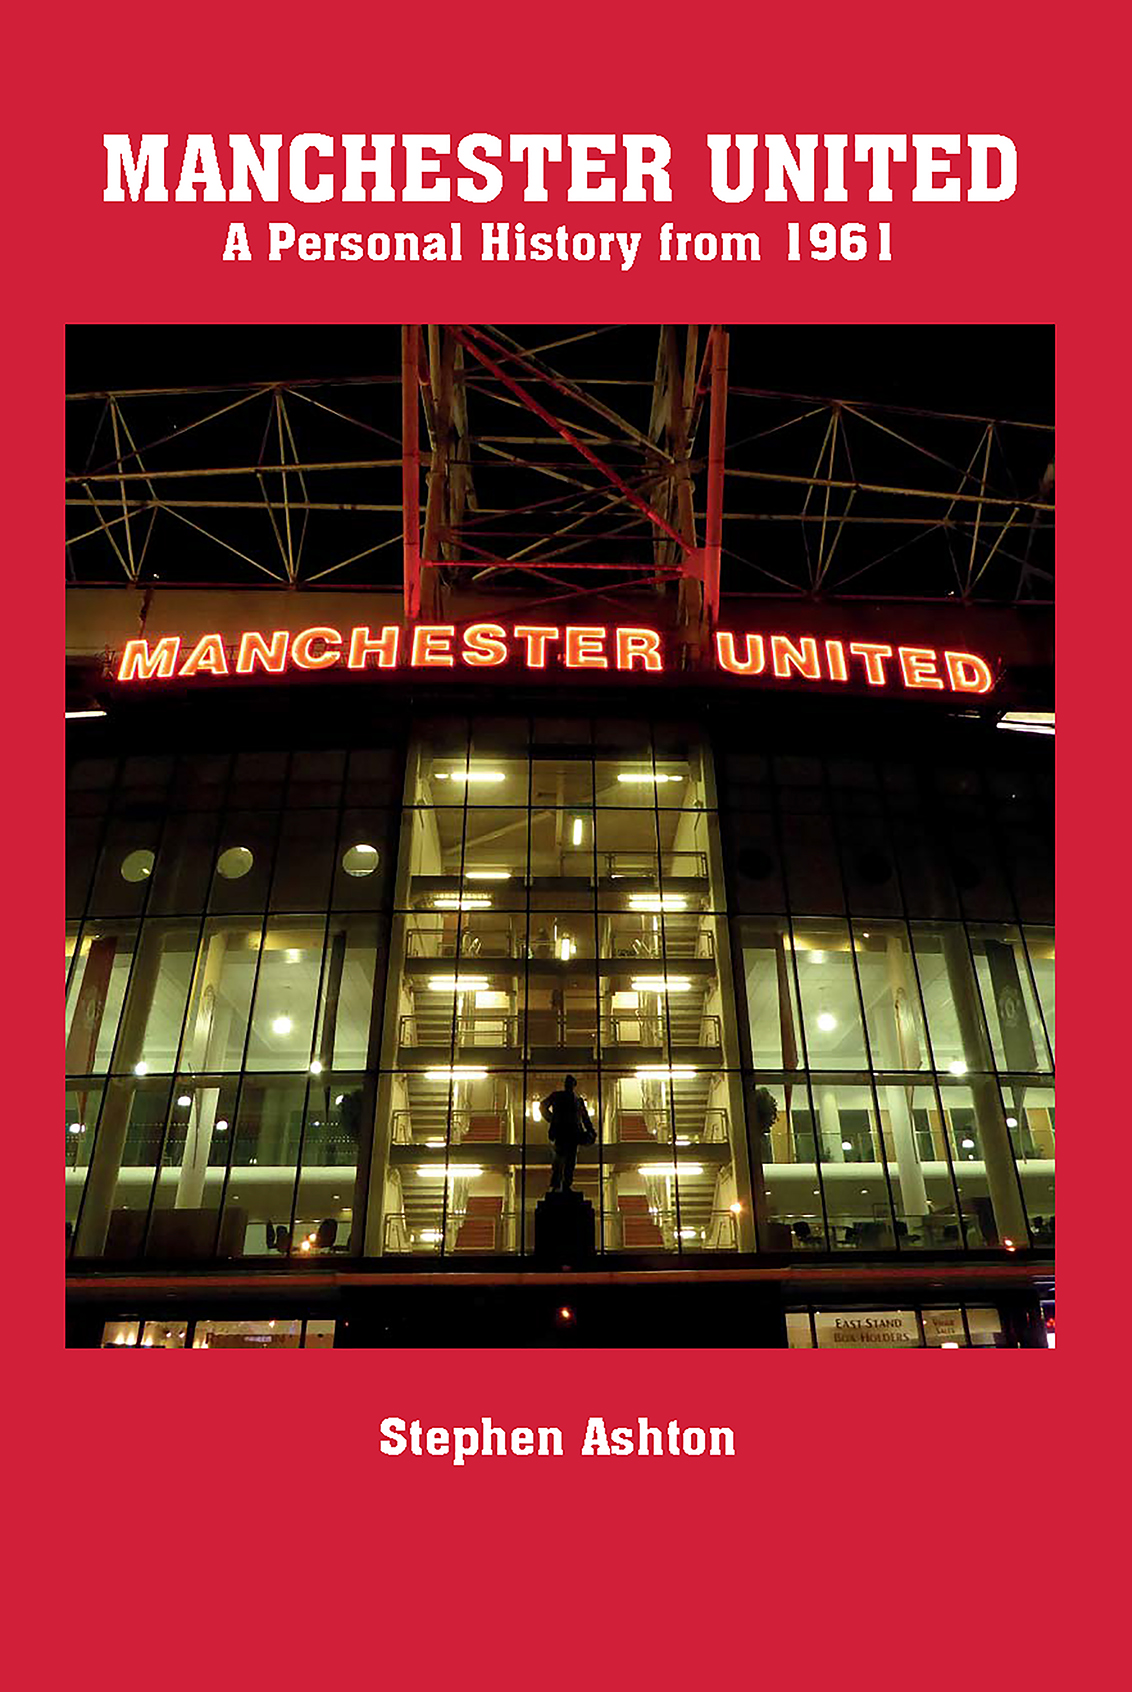 Manchester United A Personal History from 1961